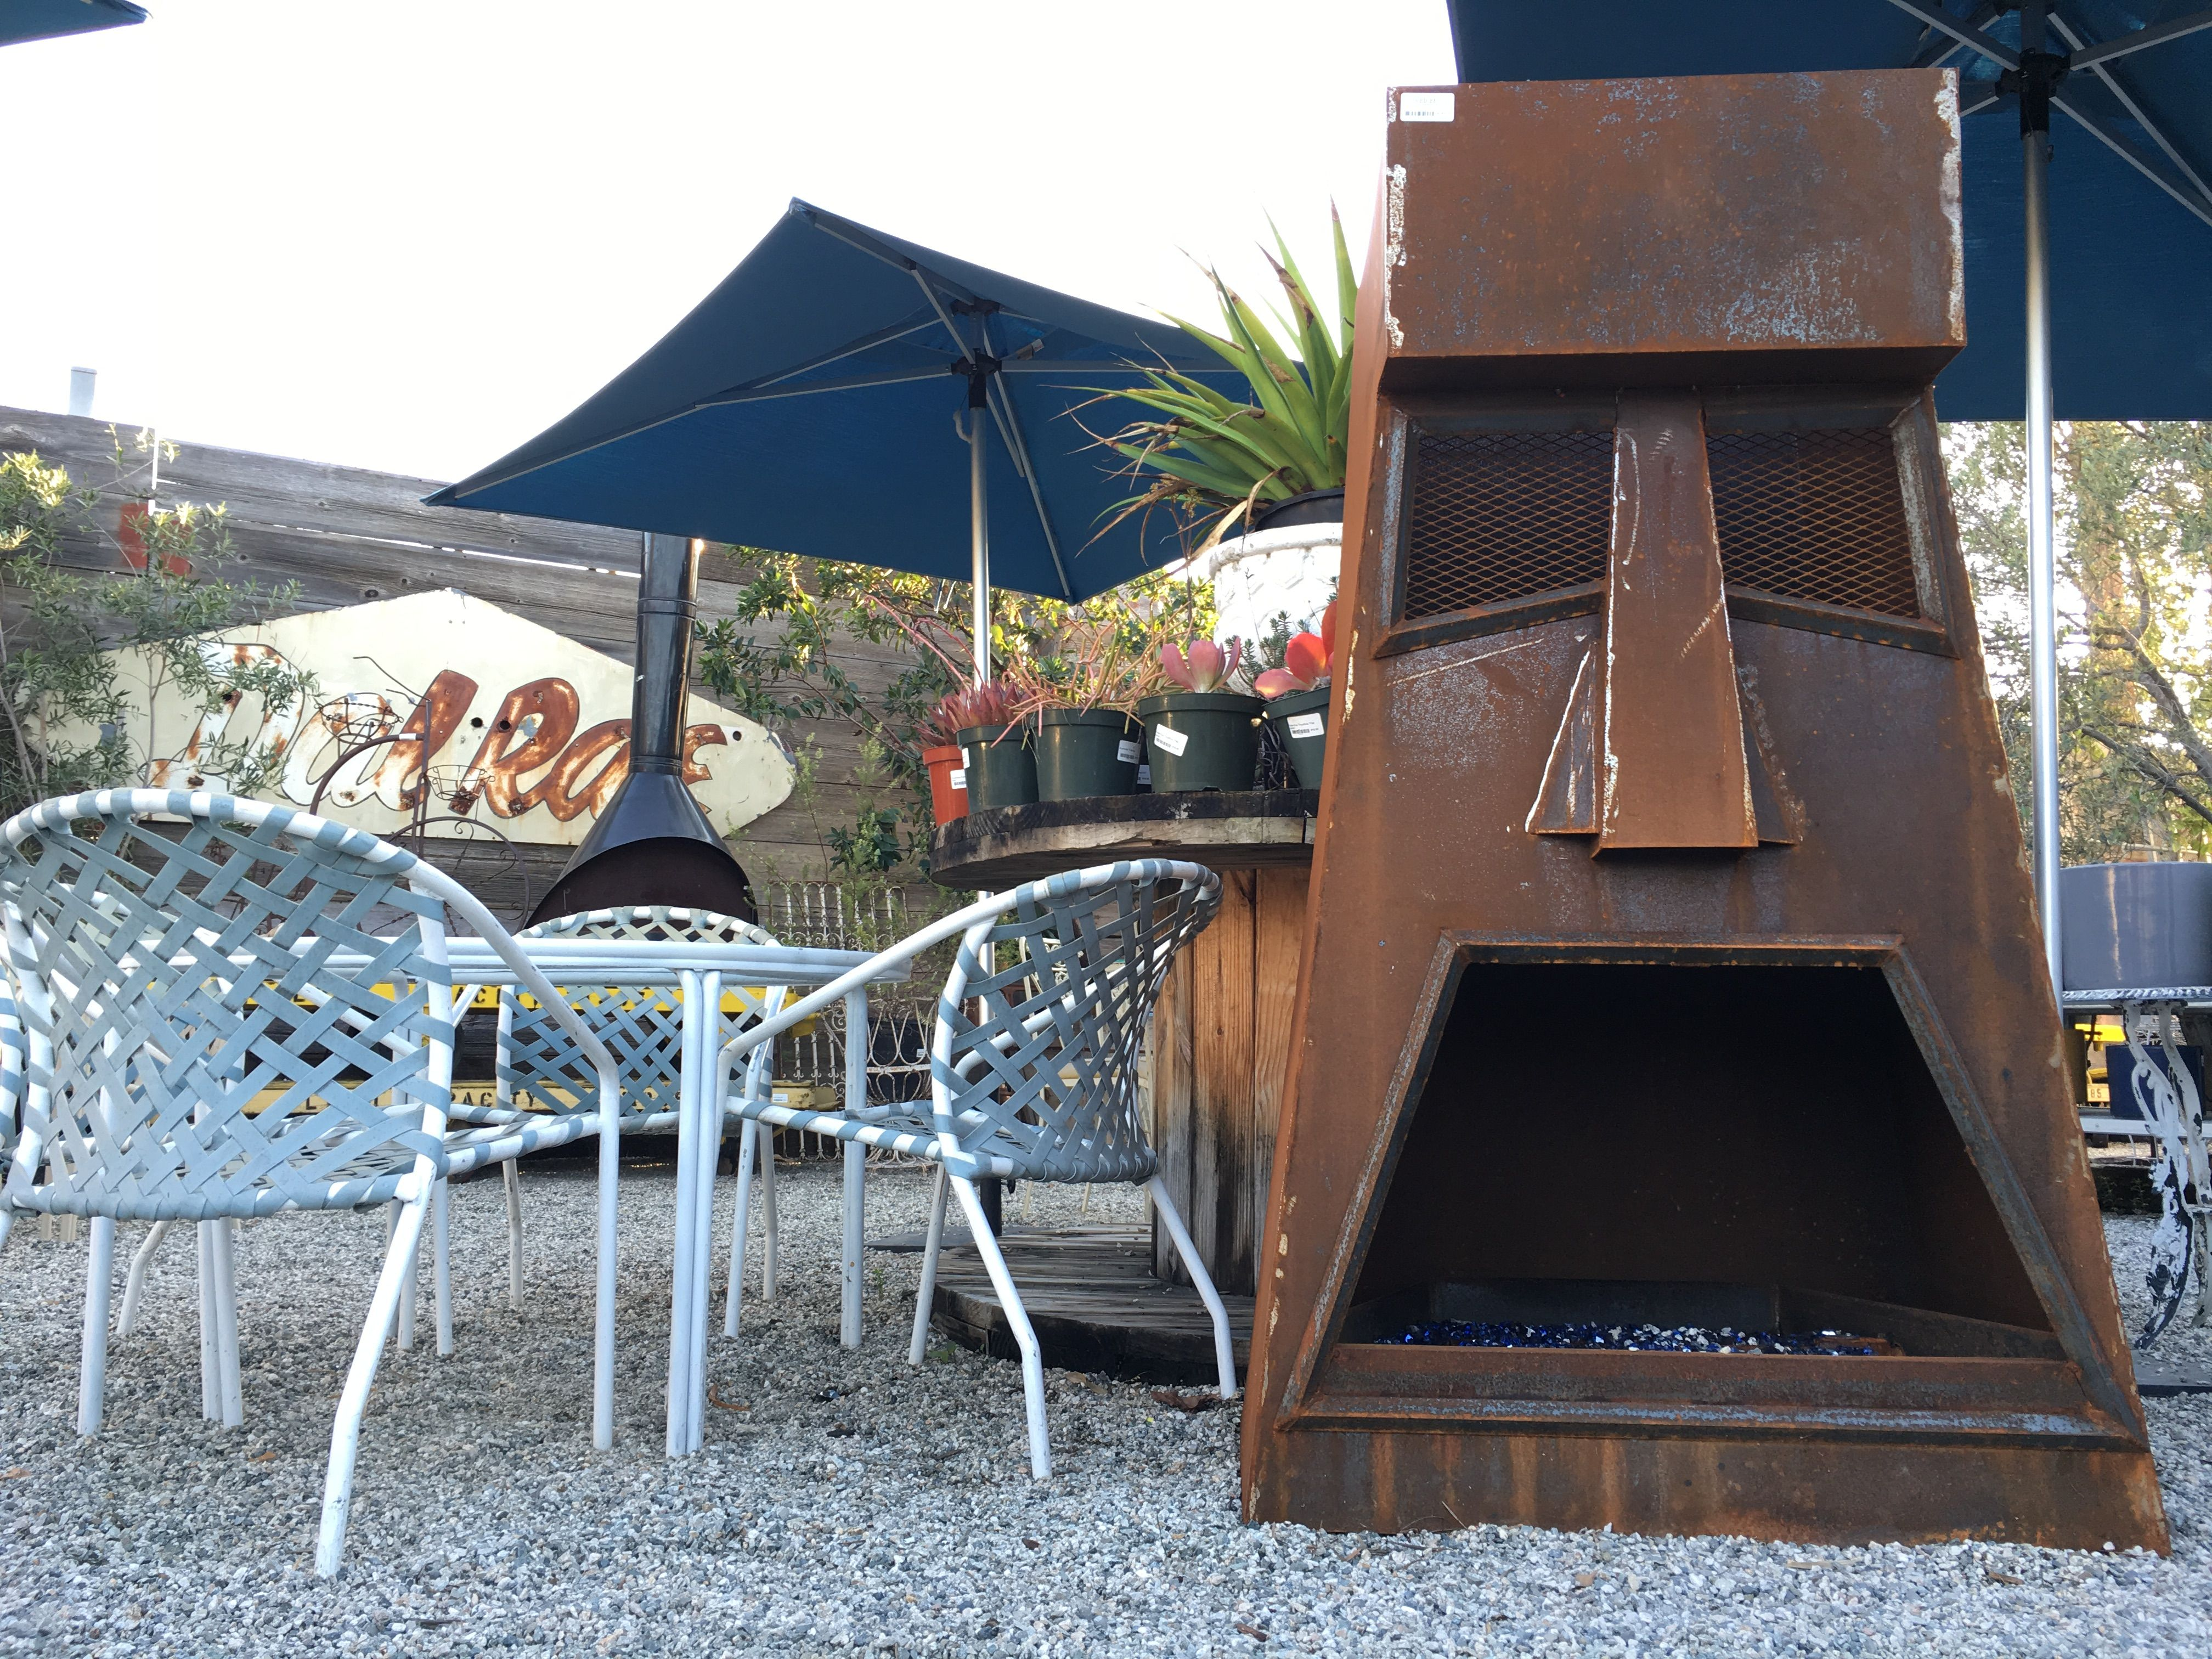 Tiki Fire Pit Made Of Scrap Metal Made By Jonny Emerick Of Emerick S Ironworks This Tiki Is Actually Ma Fire Pit Gallery Fire Pit Essentials Outdoor Fire Pit